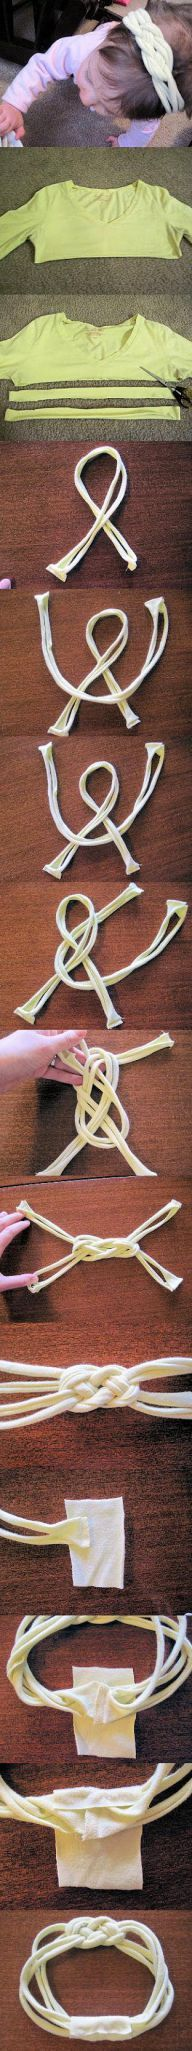 how to sailor knot headband!